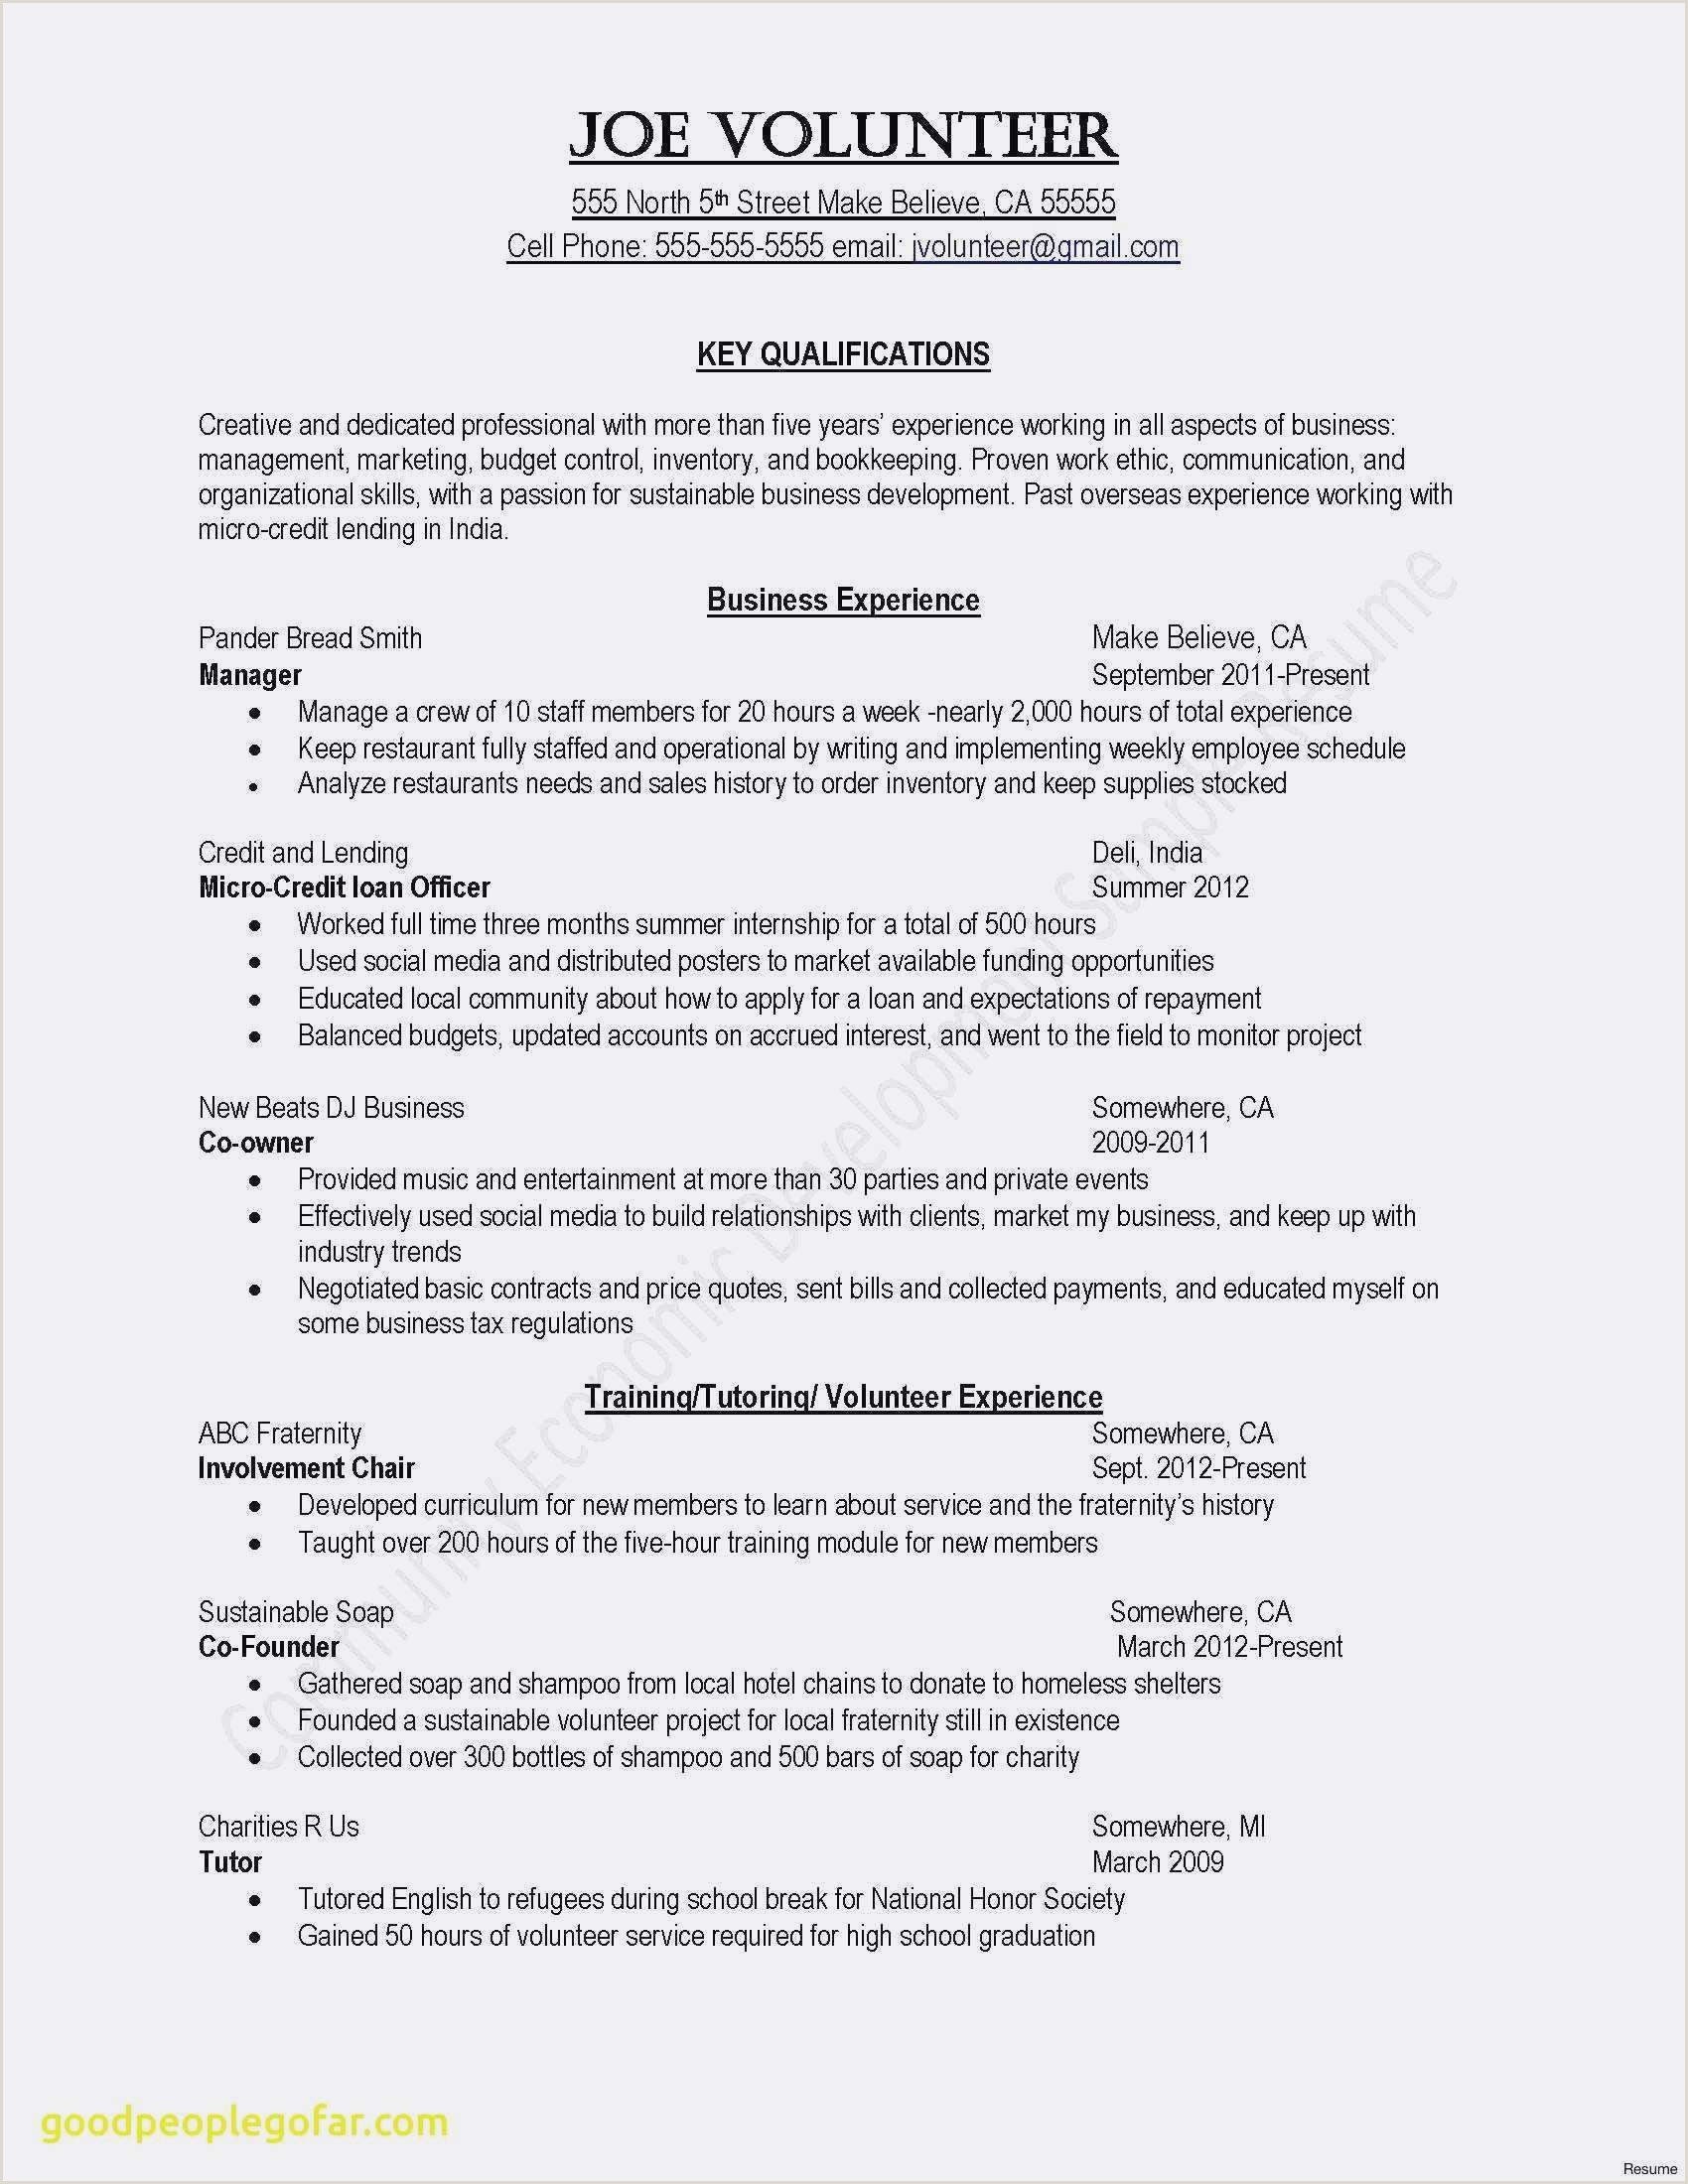 Exemple De Cv Pdf Modifiable Exemple De Cv En Anglais Word échantillon Exemple De Cv En